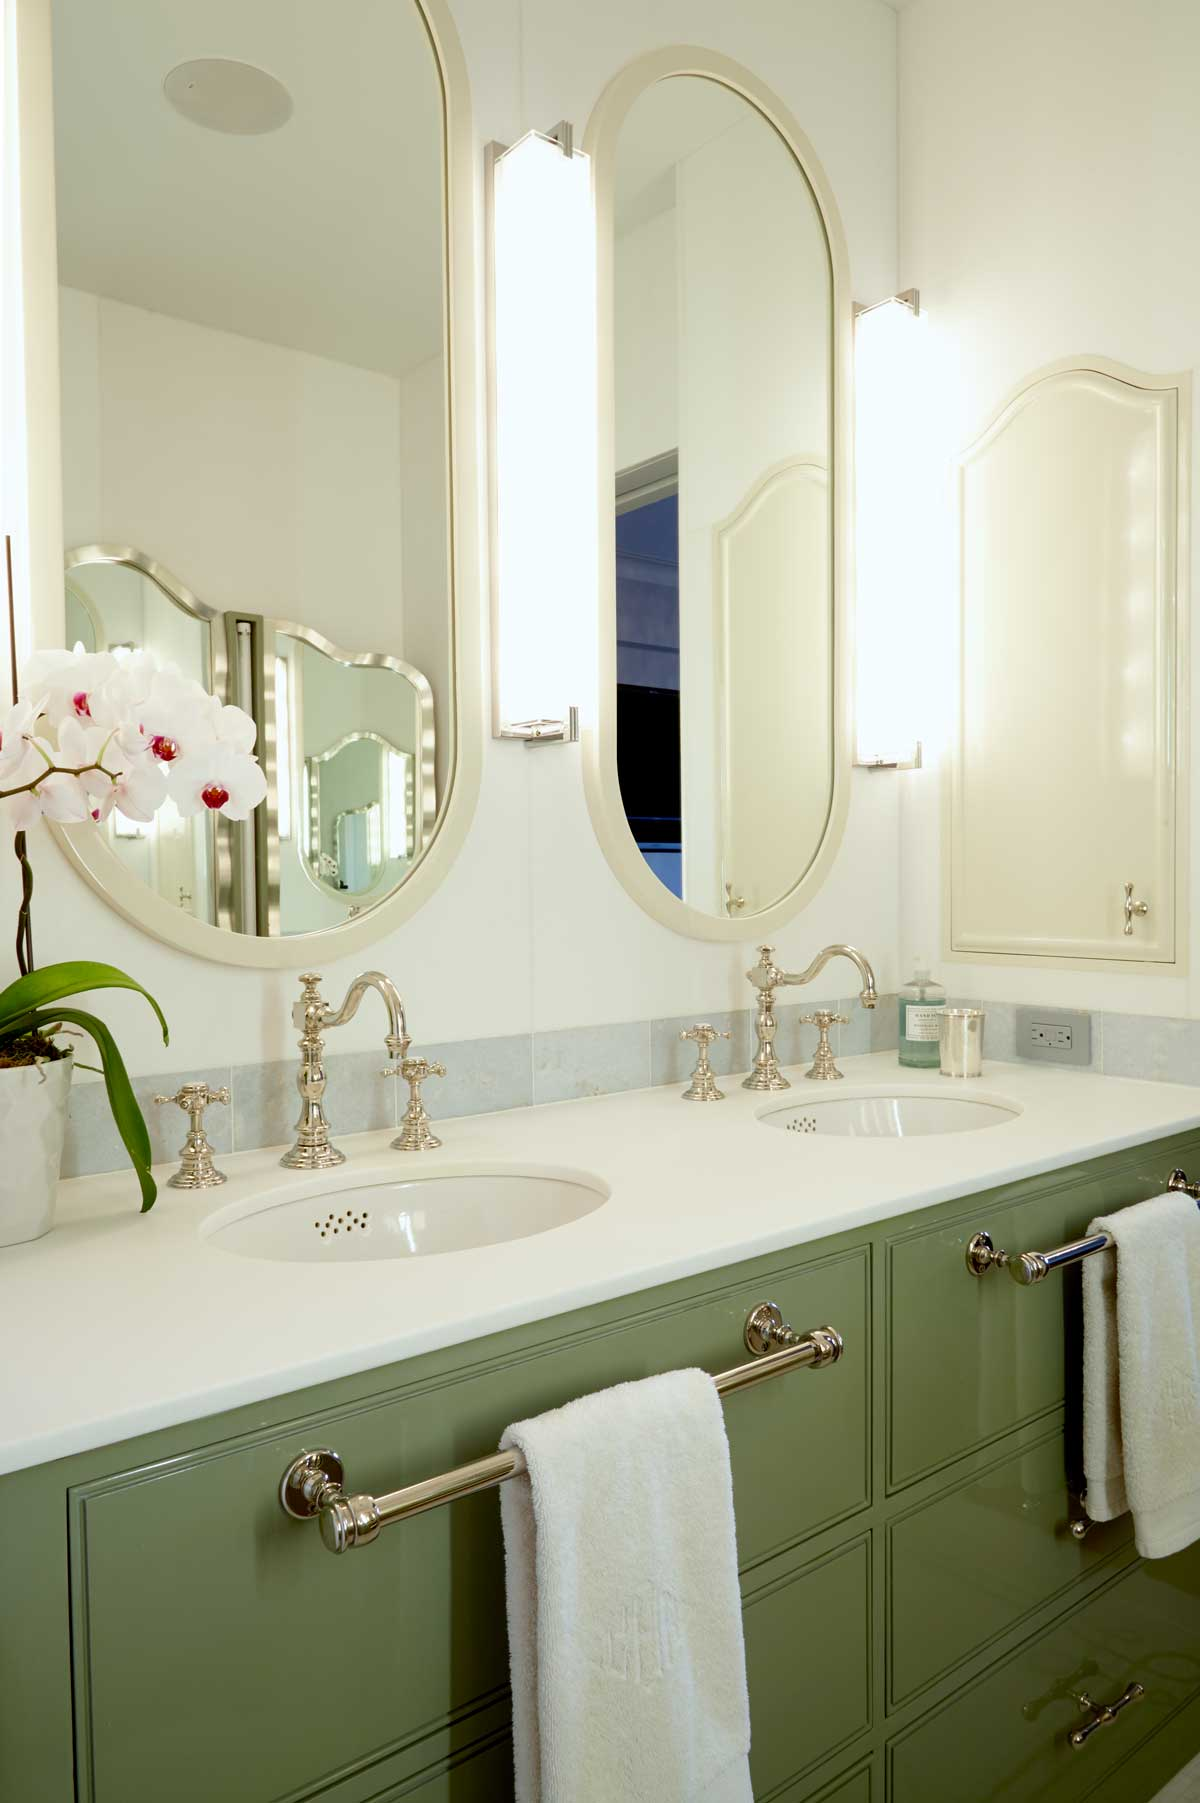 brooke moorhead design 5th avenue classic bathroom